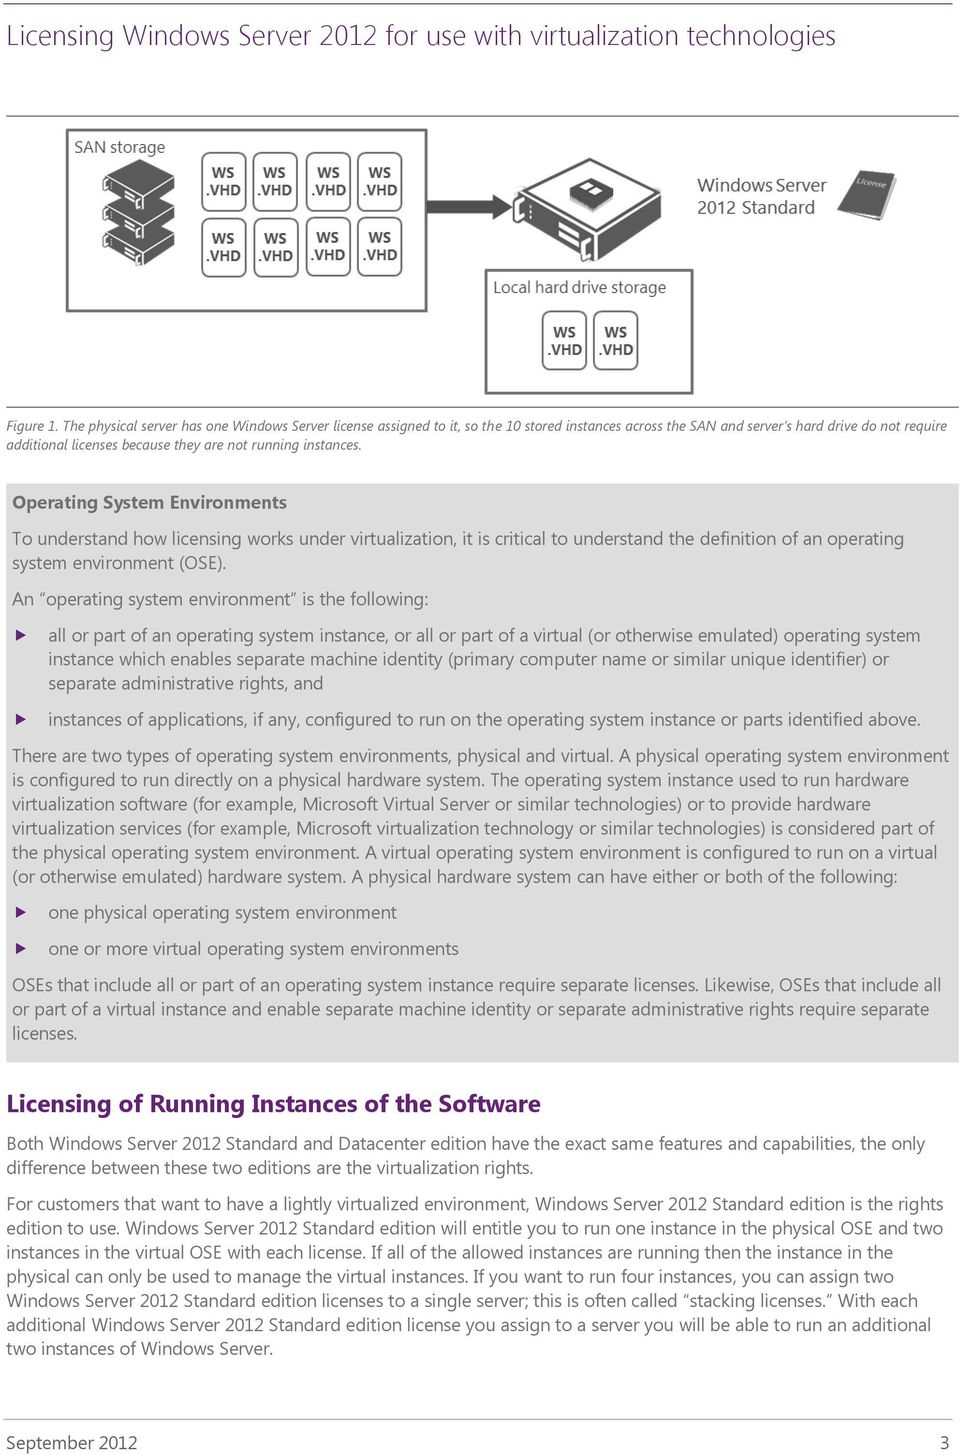 Operating System Envirnments T understand hw licensing wrks under virtualizatin, it is critical t understand the definitin f an perating system envirnment (OSE).